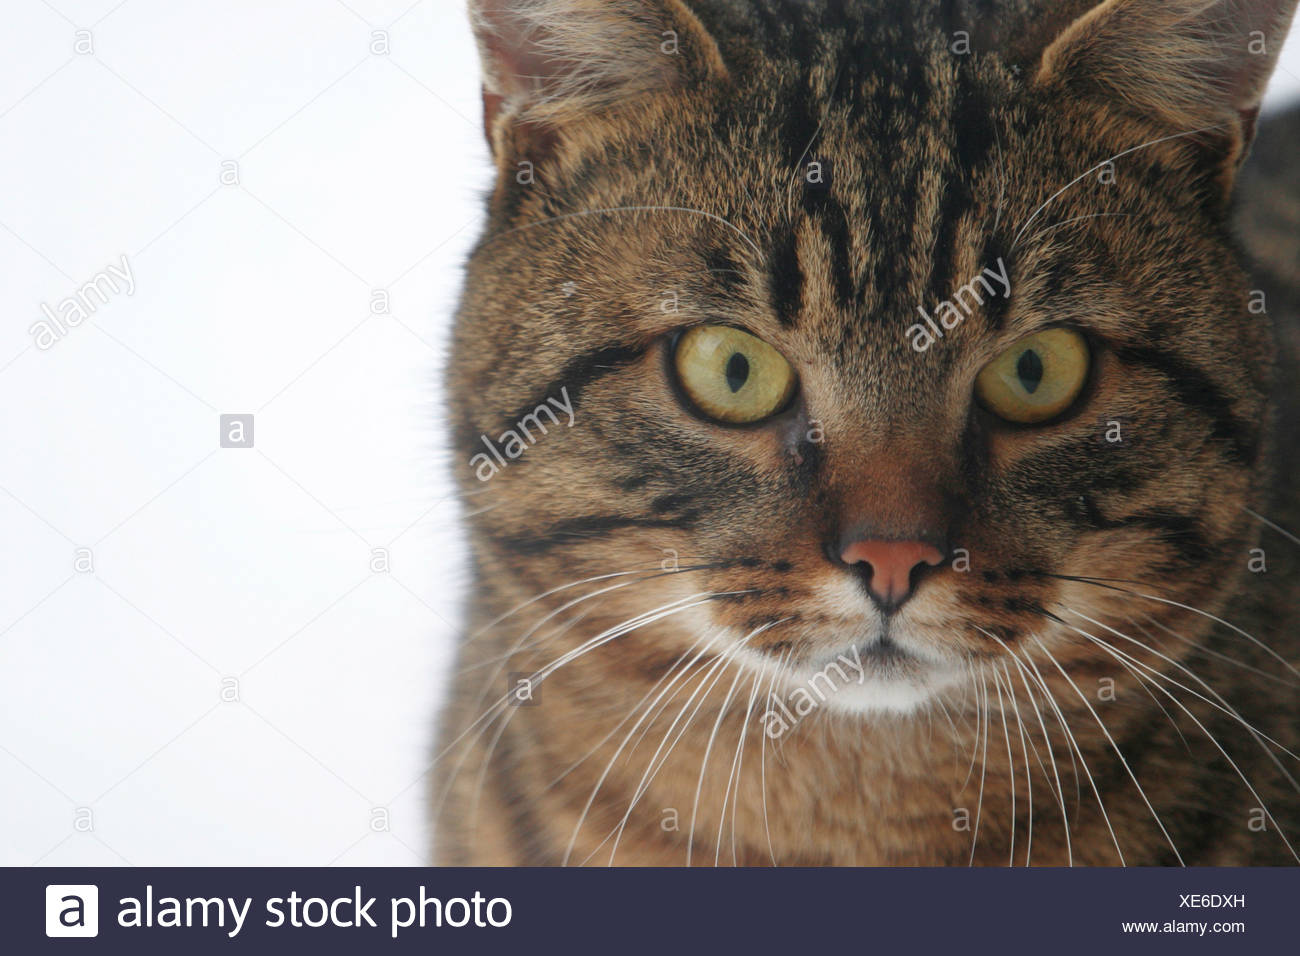 house cat - Stock Image